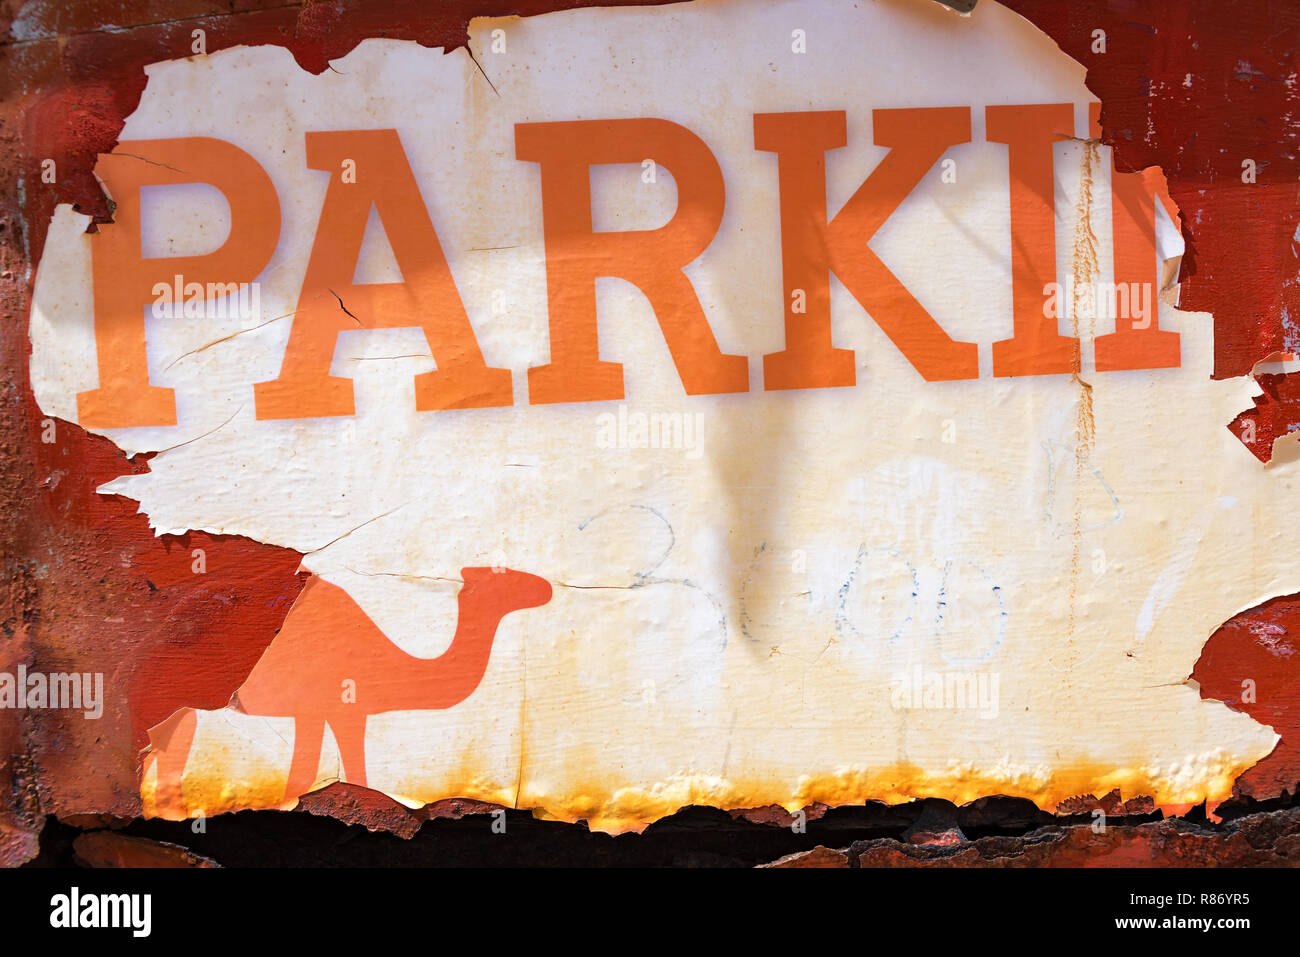 Old worn out parking sign in the Sahara Desert at Ksar Ghilane, Tunisia - Stock Image